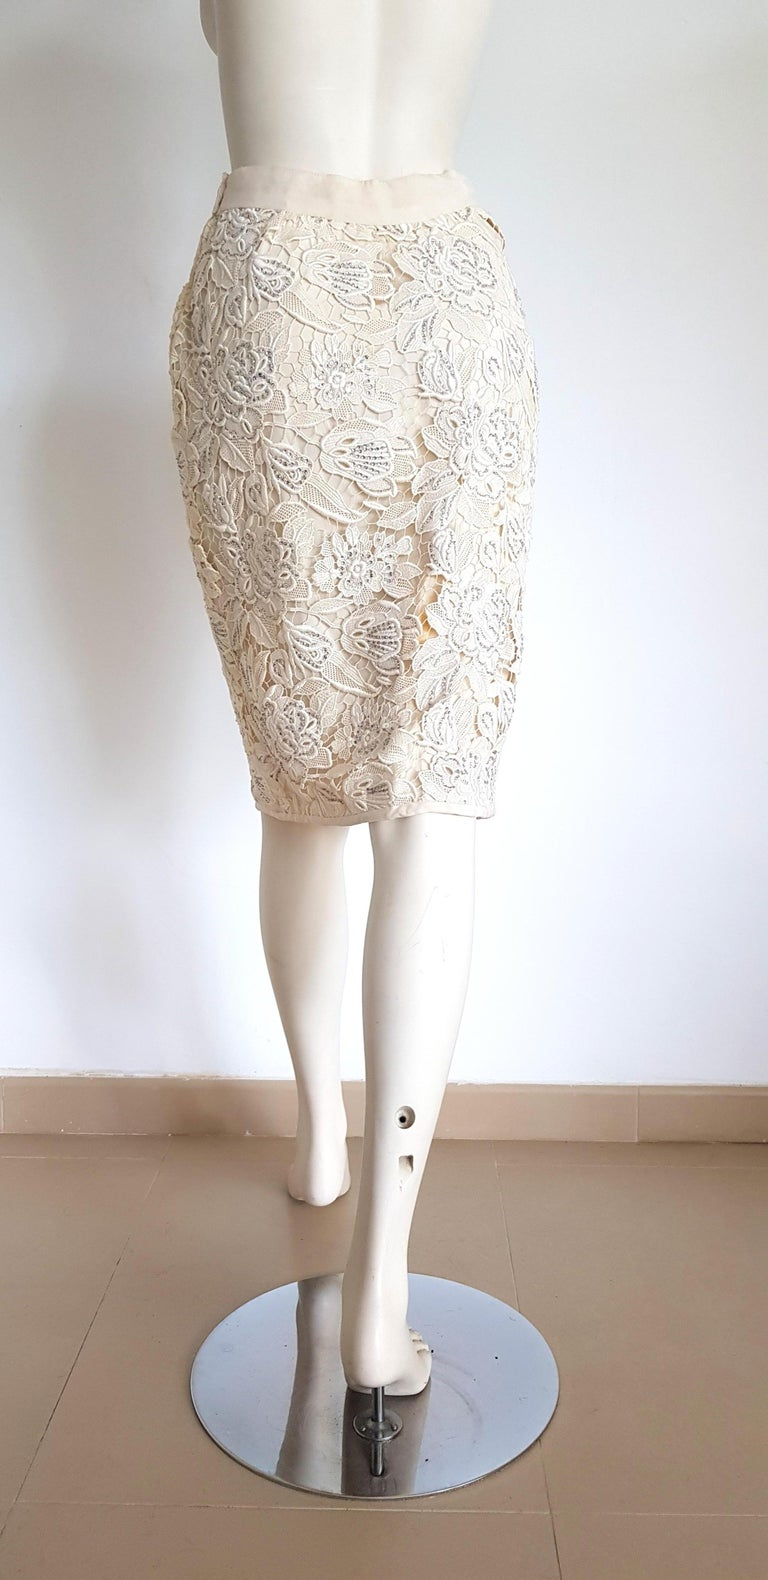 VALENTINO Haute Couture Swarovski Diamonds Embroidered Lace Beige Suit - Unworn For Sale 6